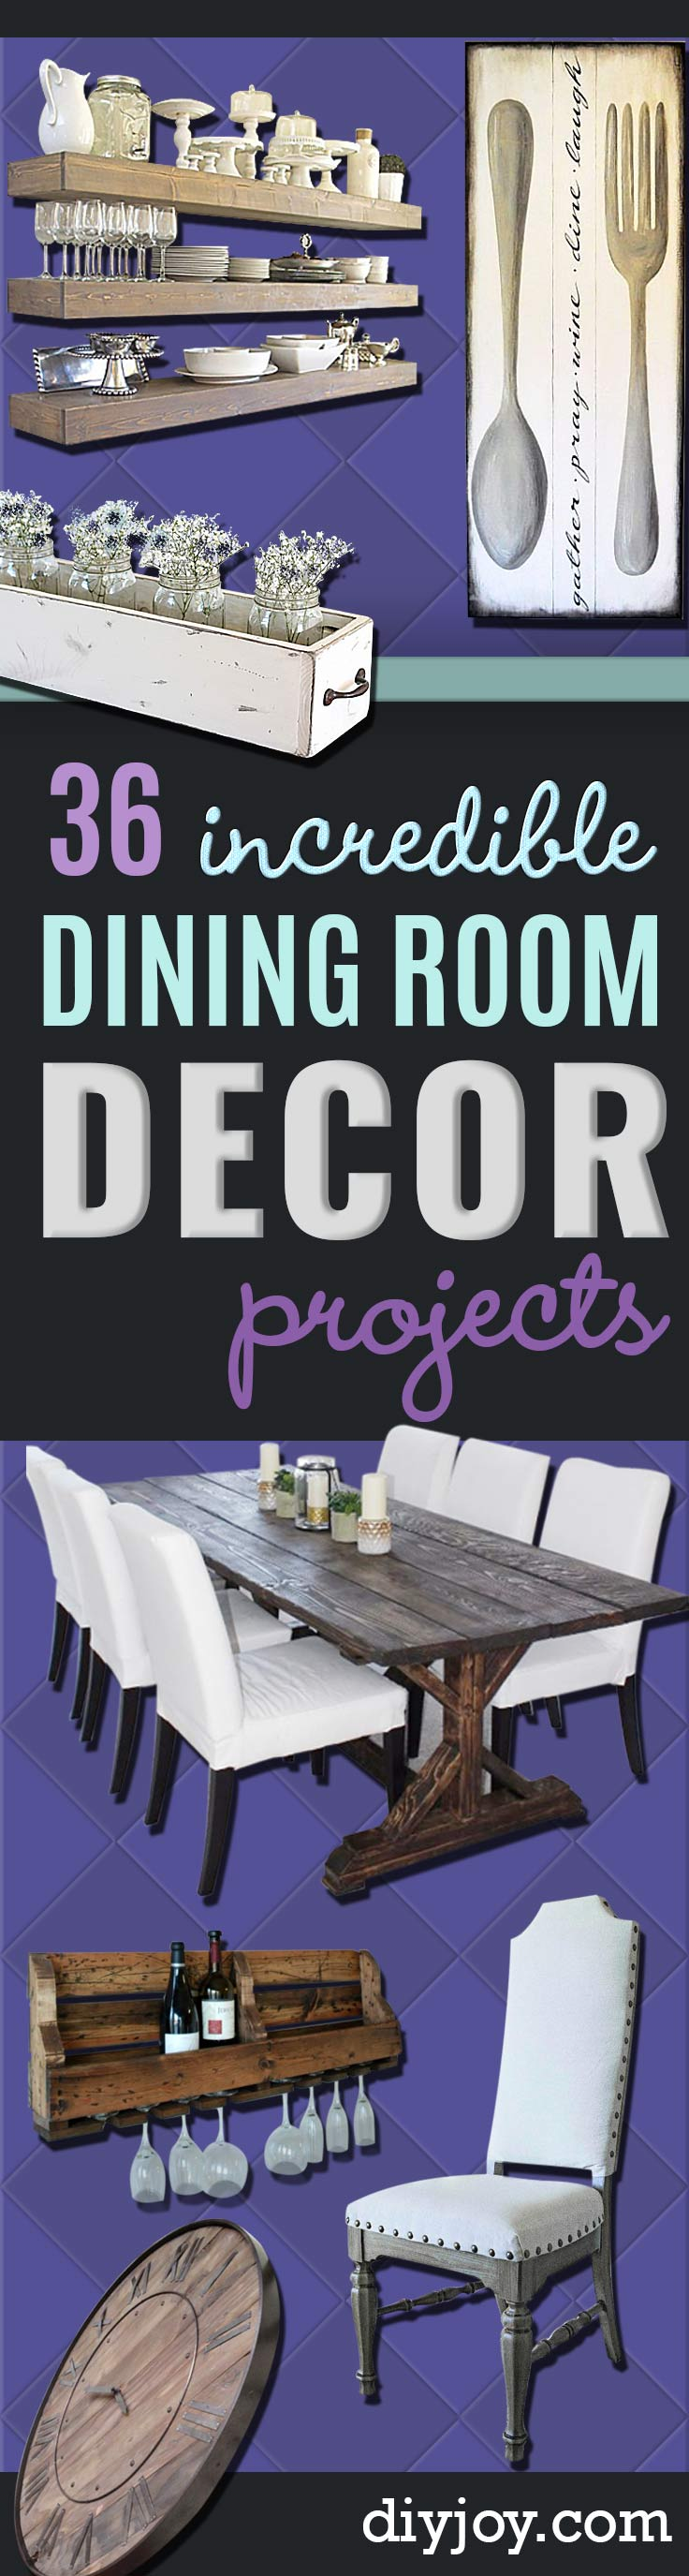 DIY Dining Room Decor Ideas   Cool DIY Projects For Table, Chairs,  Decorations,